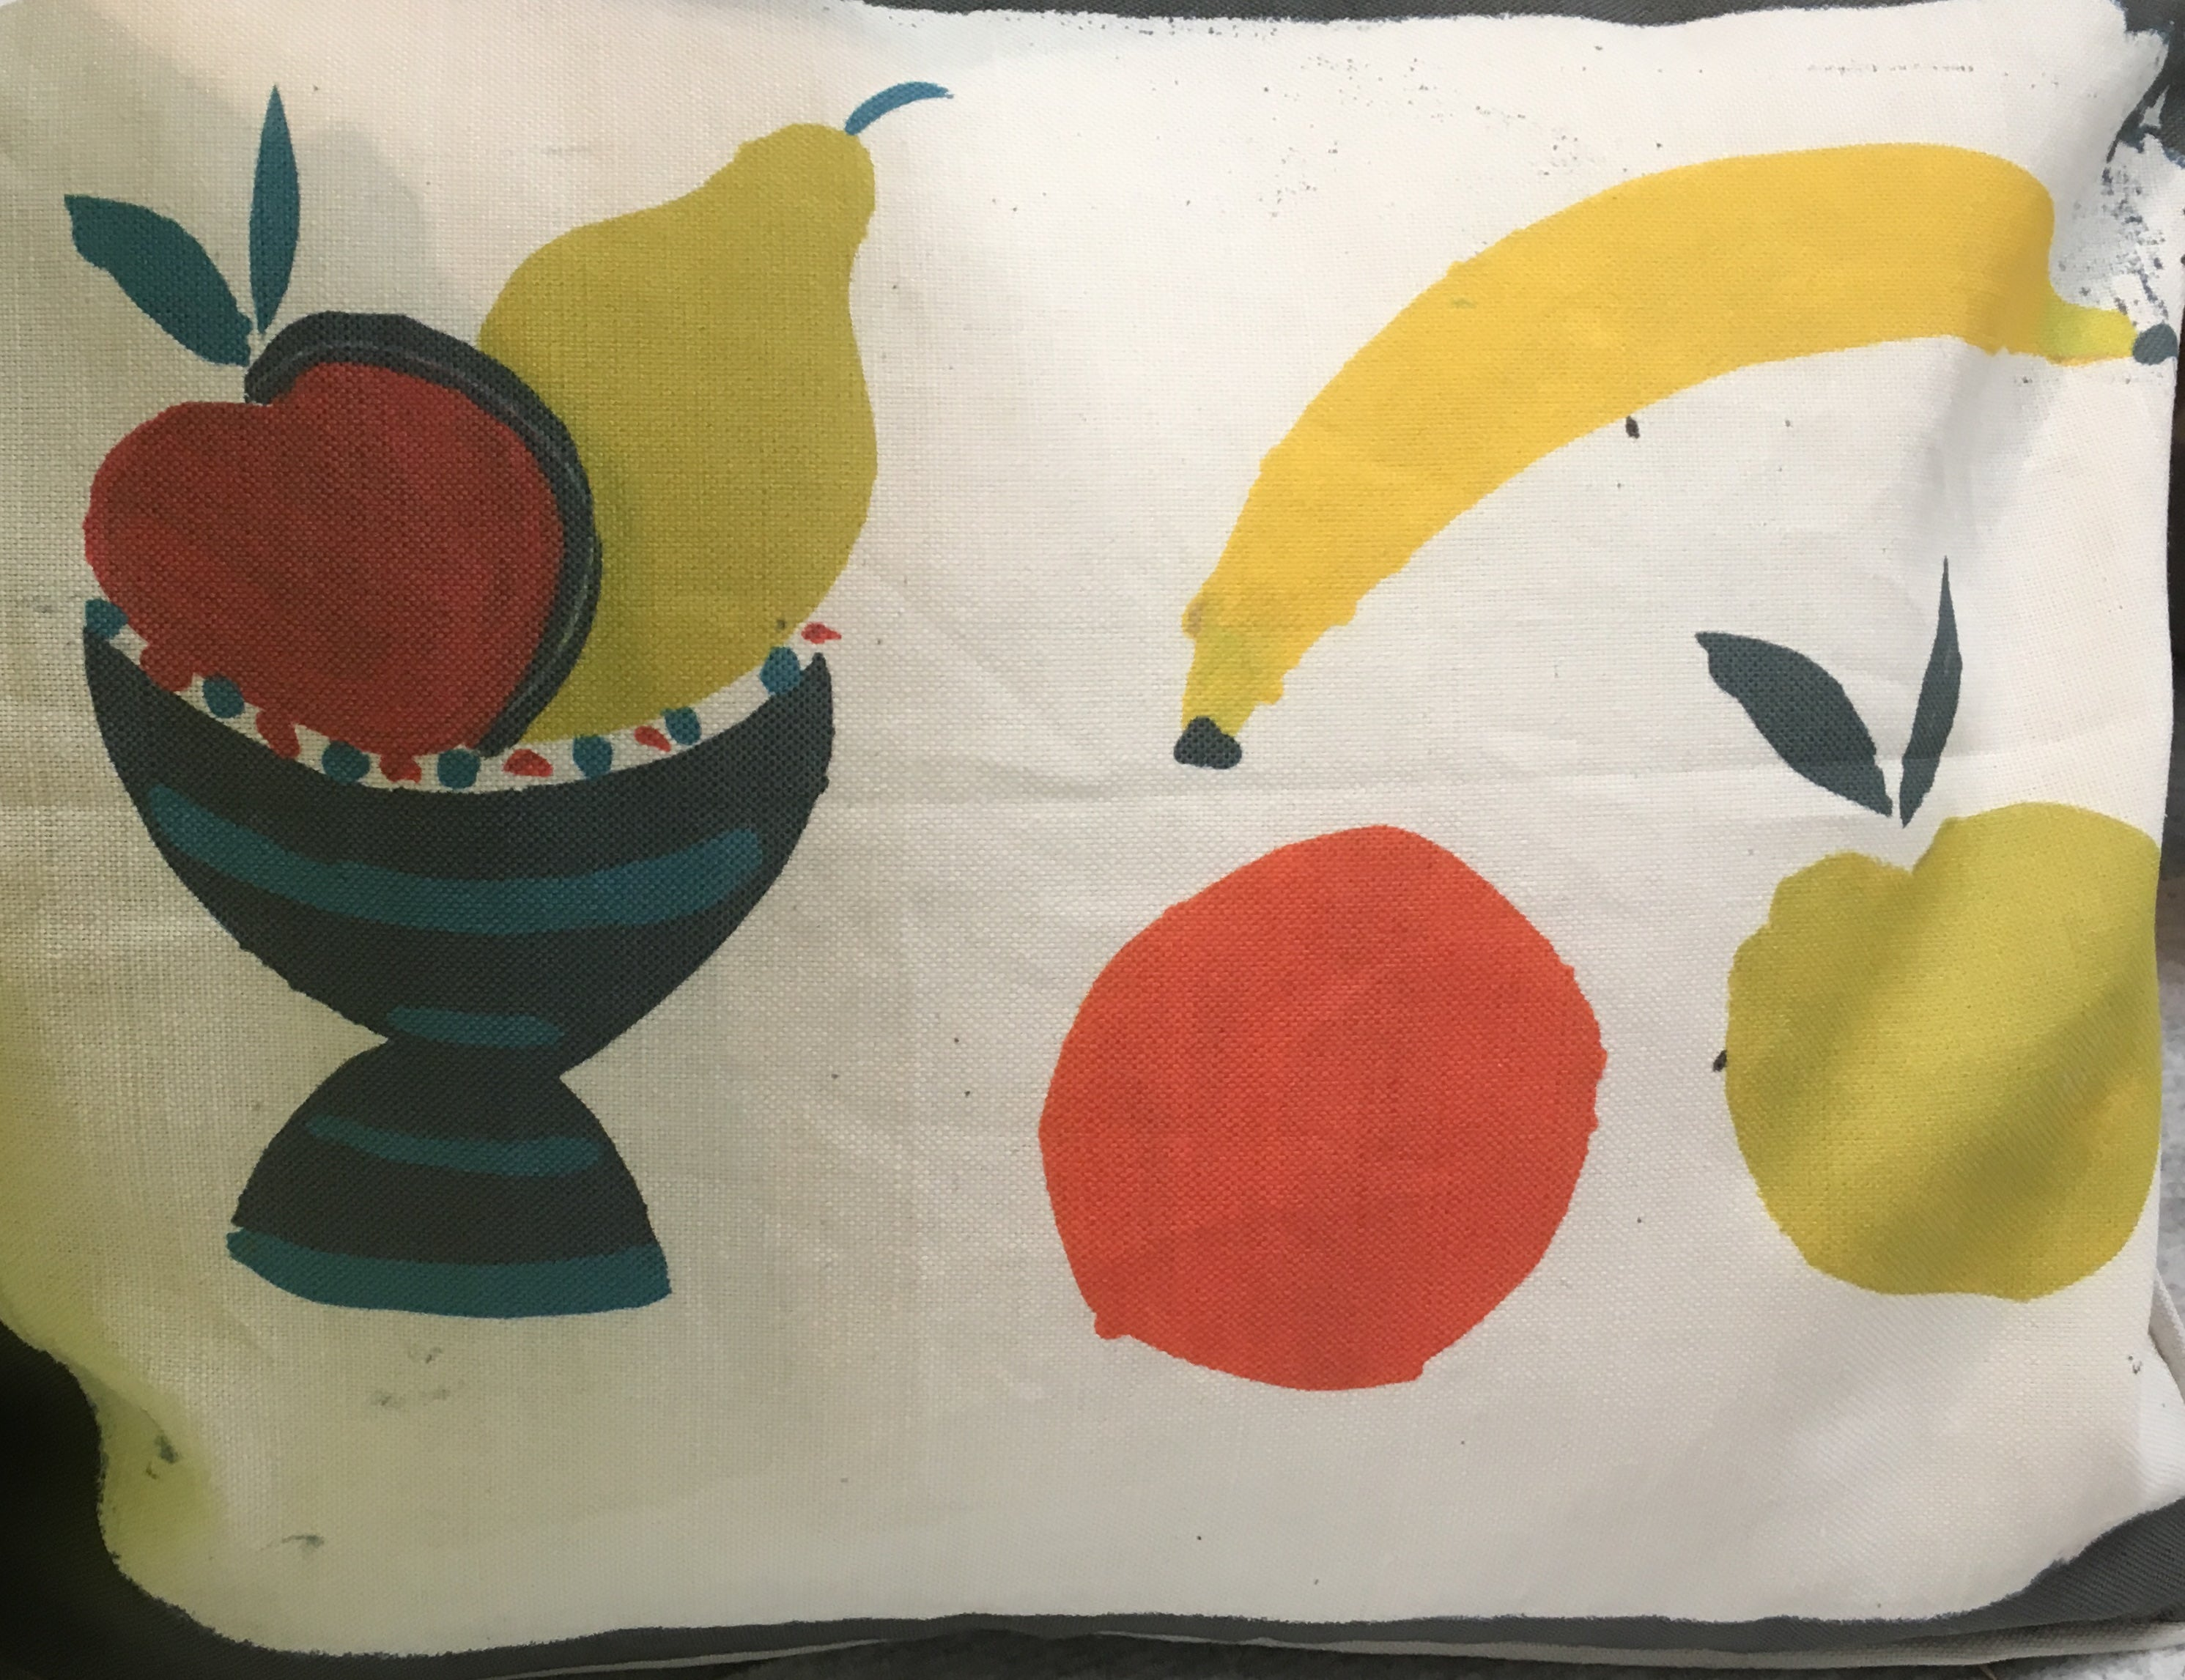 Fruit Bowl + Banana Lampshade